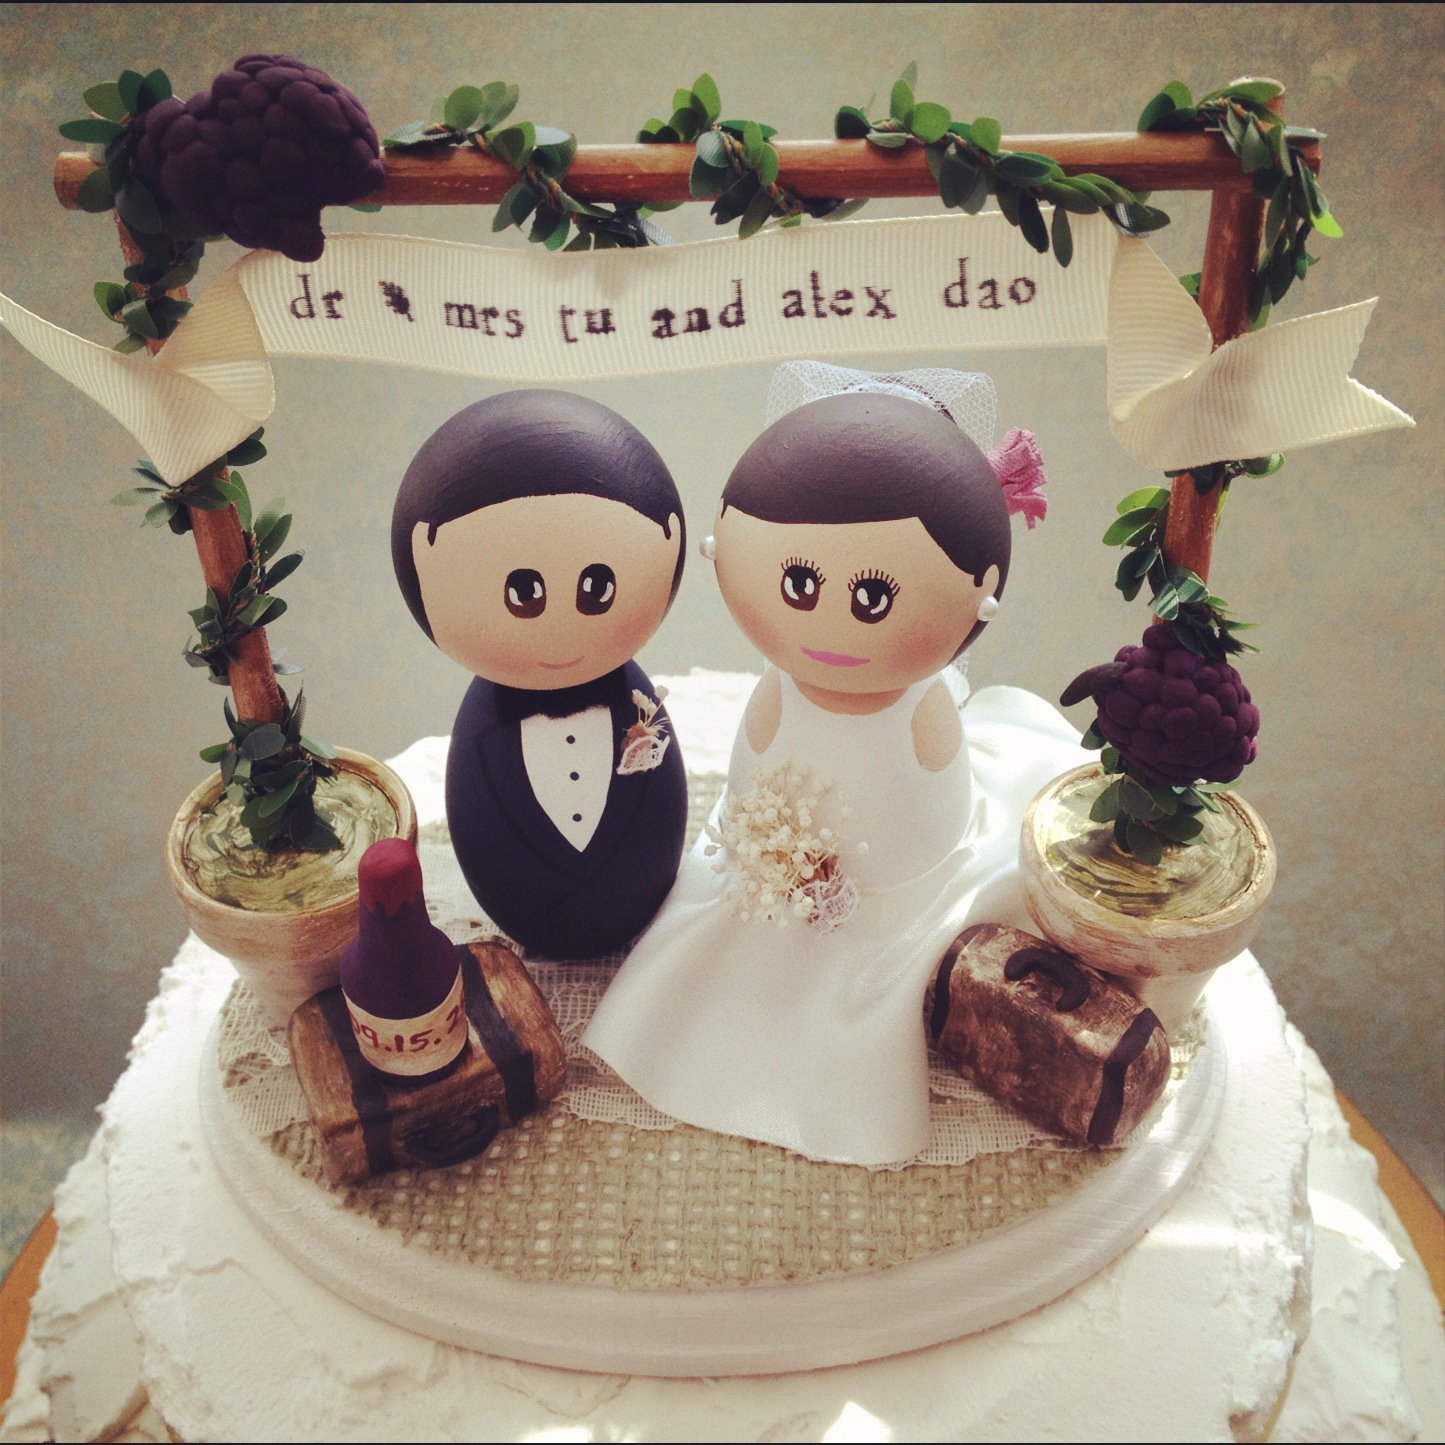 Dsmeebee Winery Wedding Theme Cake Topper Base With Bride And Groom